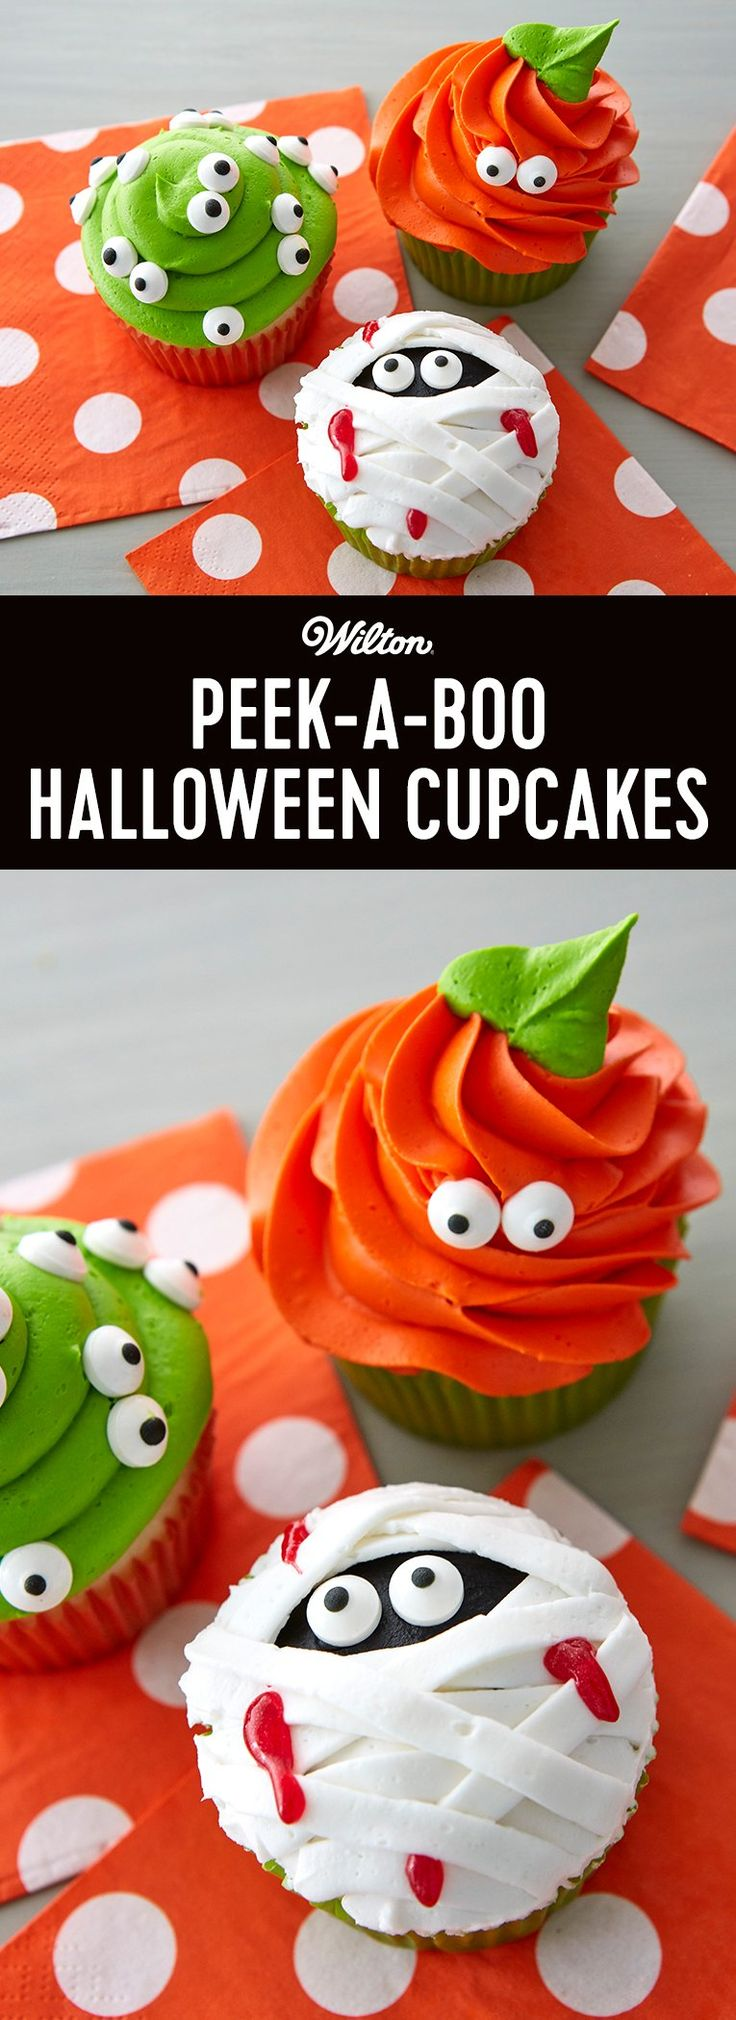 Peek-a-Boo Halloween Cupcakes - This Halloween, all eyes will be on the cupcakes that look back at you! Serve them to all the trick-or-treating mini monsters and ghouls, plus the costumed adults who show up at your door. But make a double batch, as these are so frighteningly fun everyone will want one. #halloweencupcakes #halloween #cupcakes